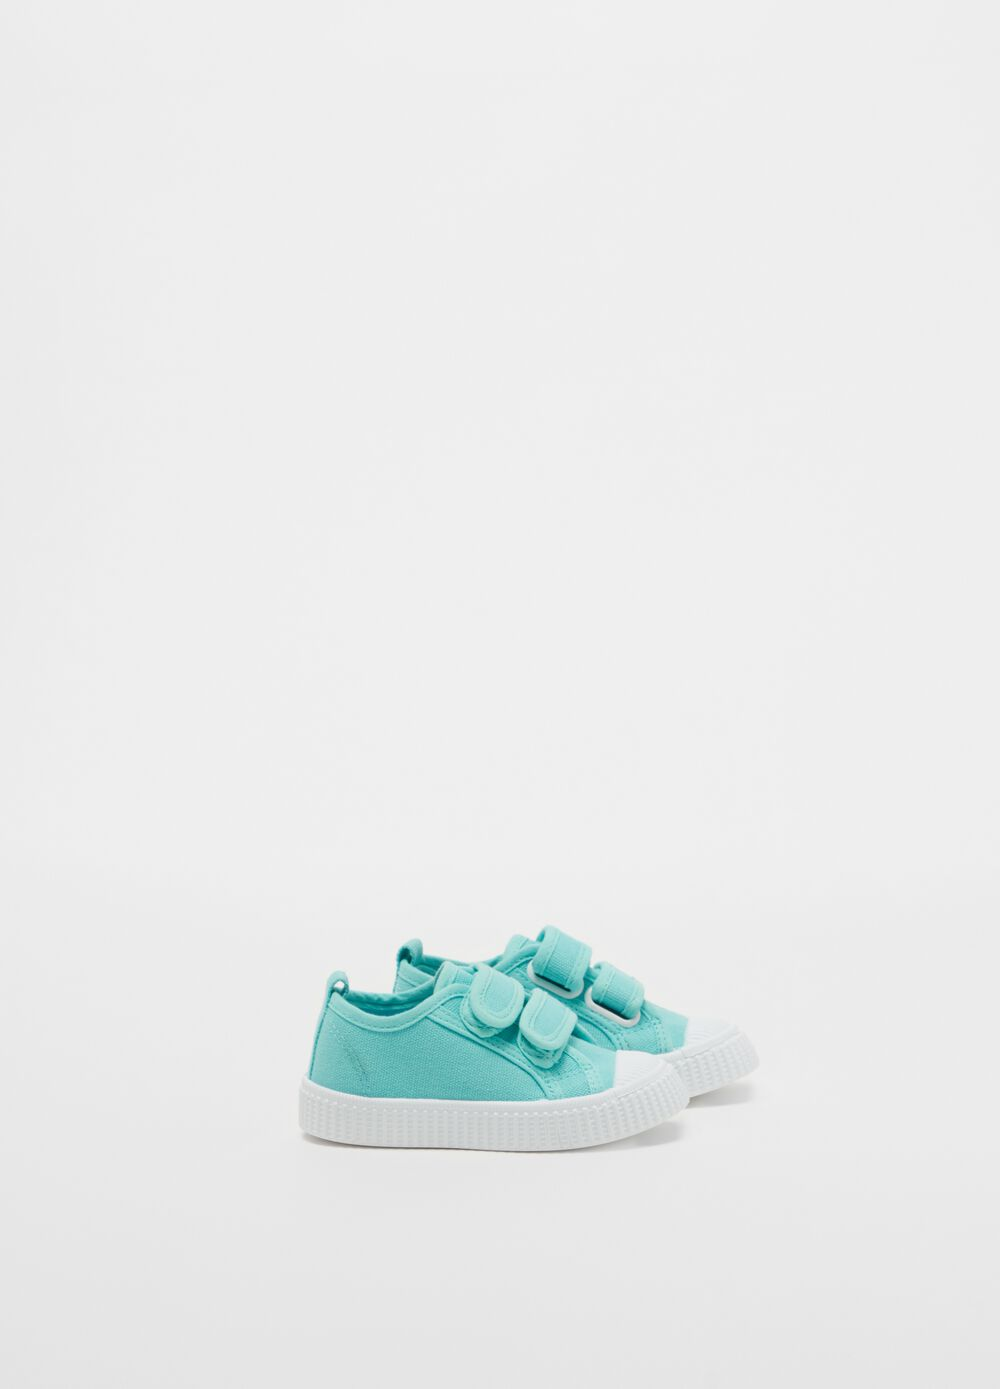 Cotton sneakers with stretch Velcro